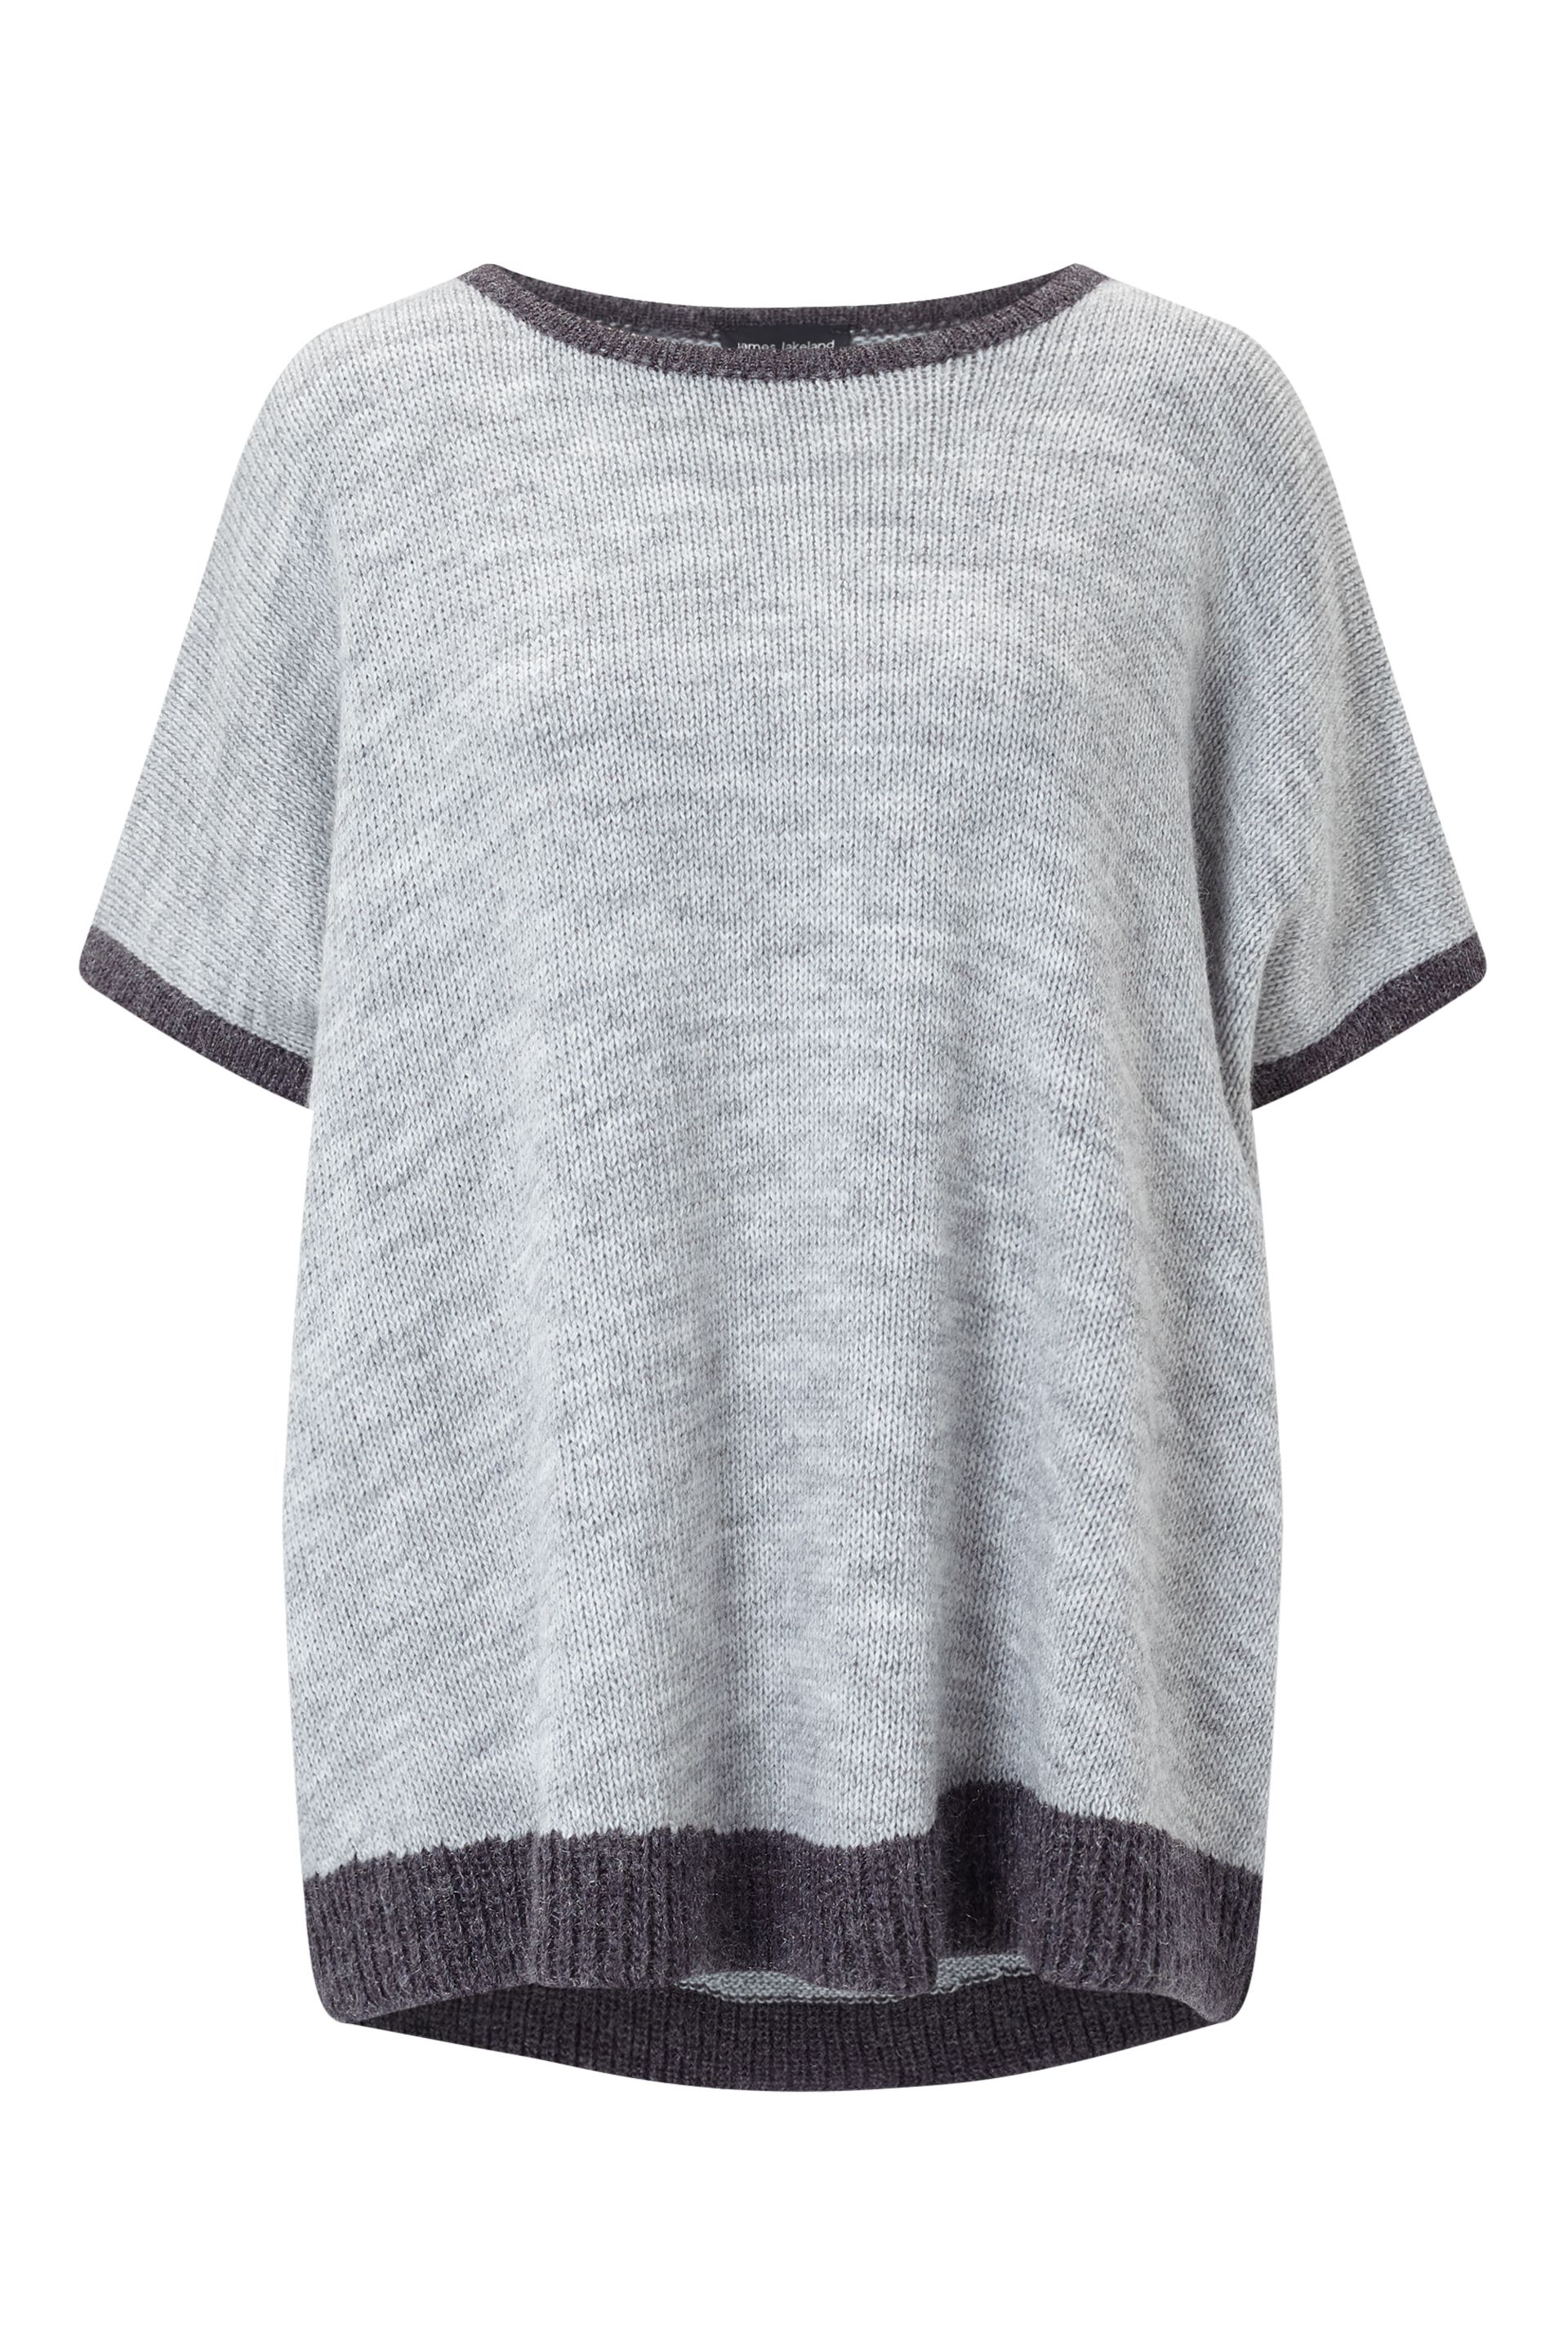 James Lakeland Contrast Hem Knit Top, Grey